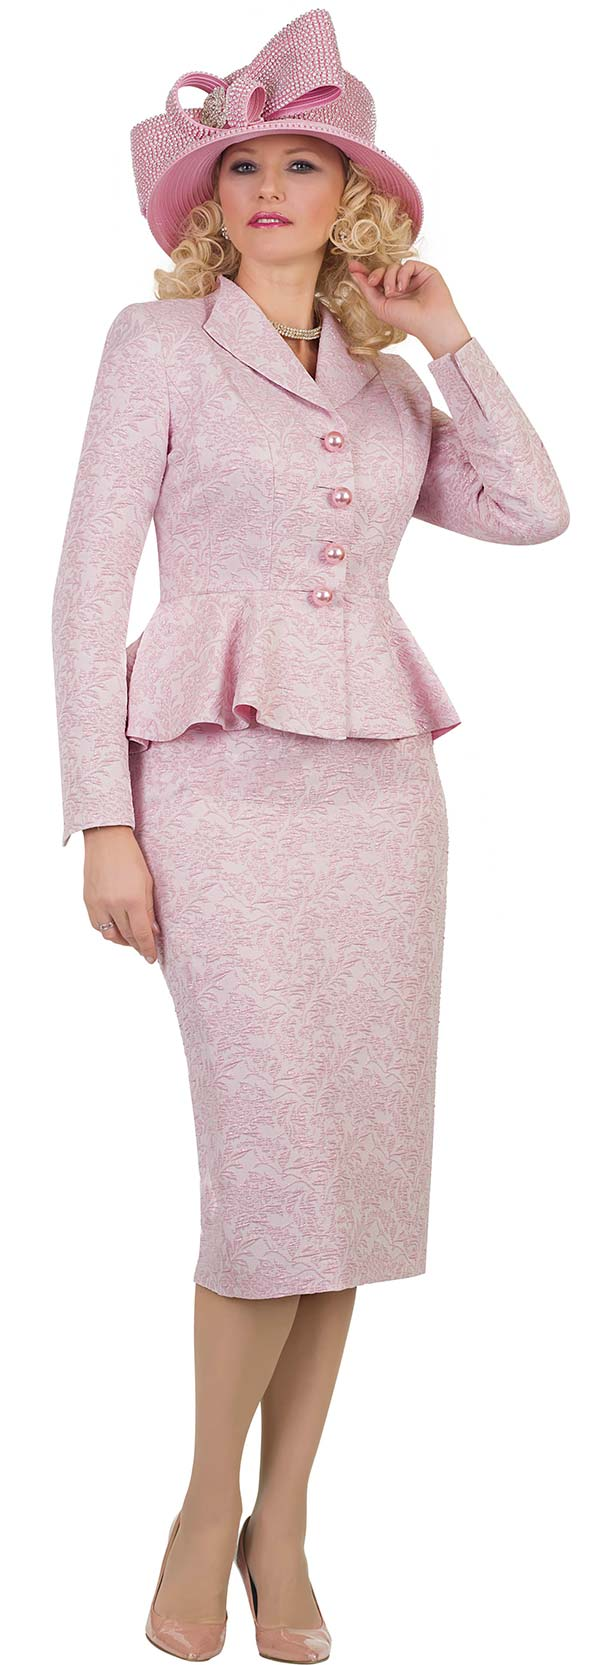 Lily and Taylor 4483-Pink -Two Piece Womens Church Suit In Floral Textured Fabric With Wing Lapel Peplum Jacket